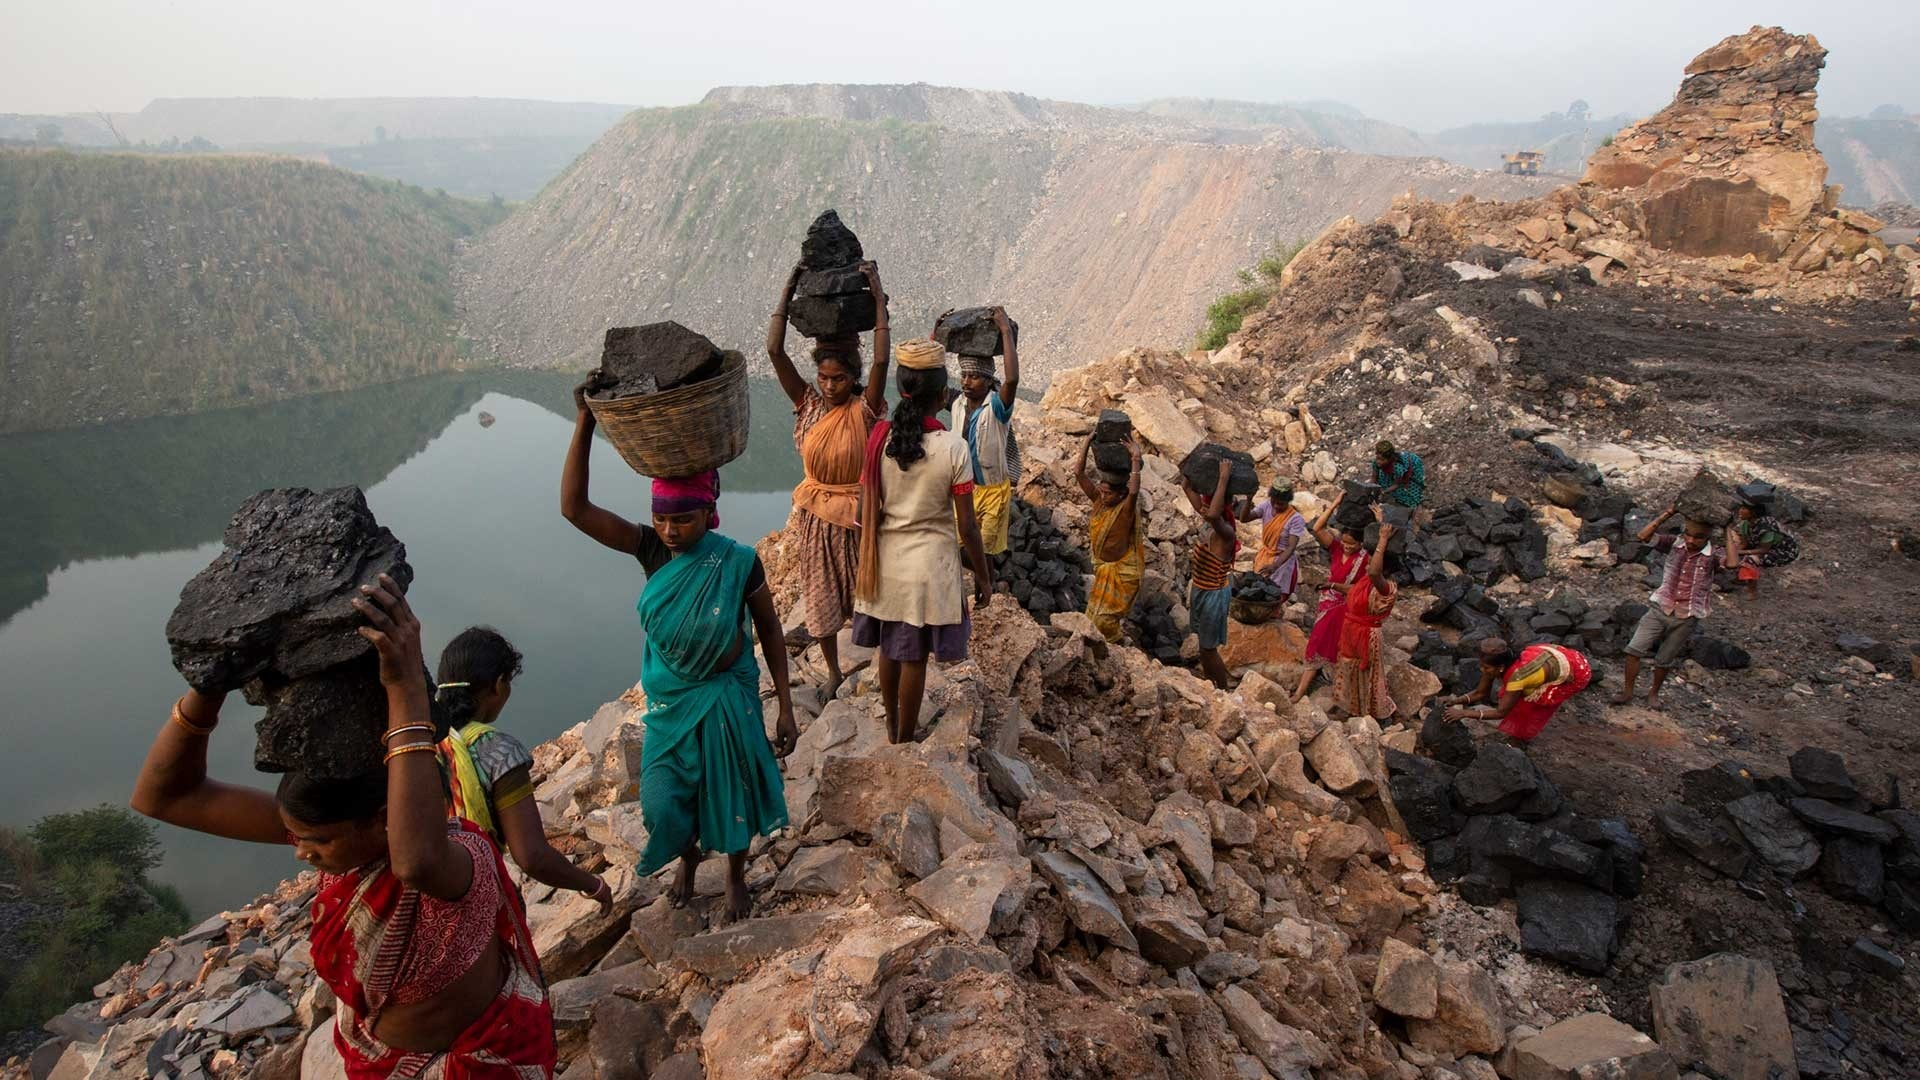 Artisanal miners in India